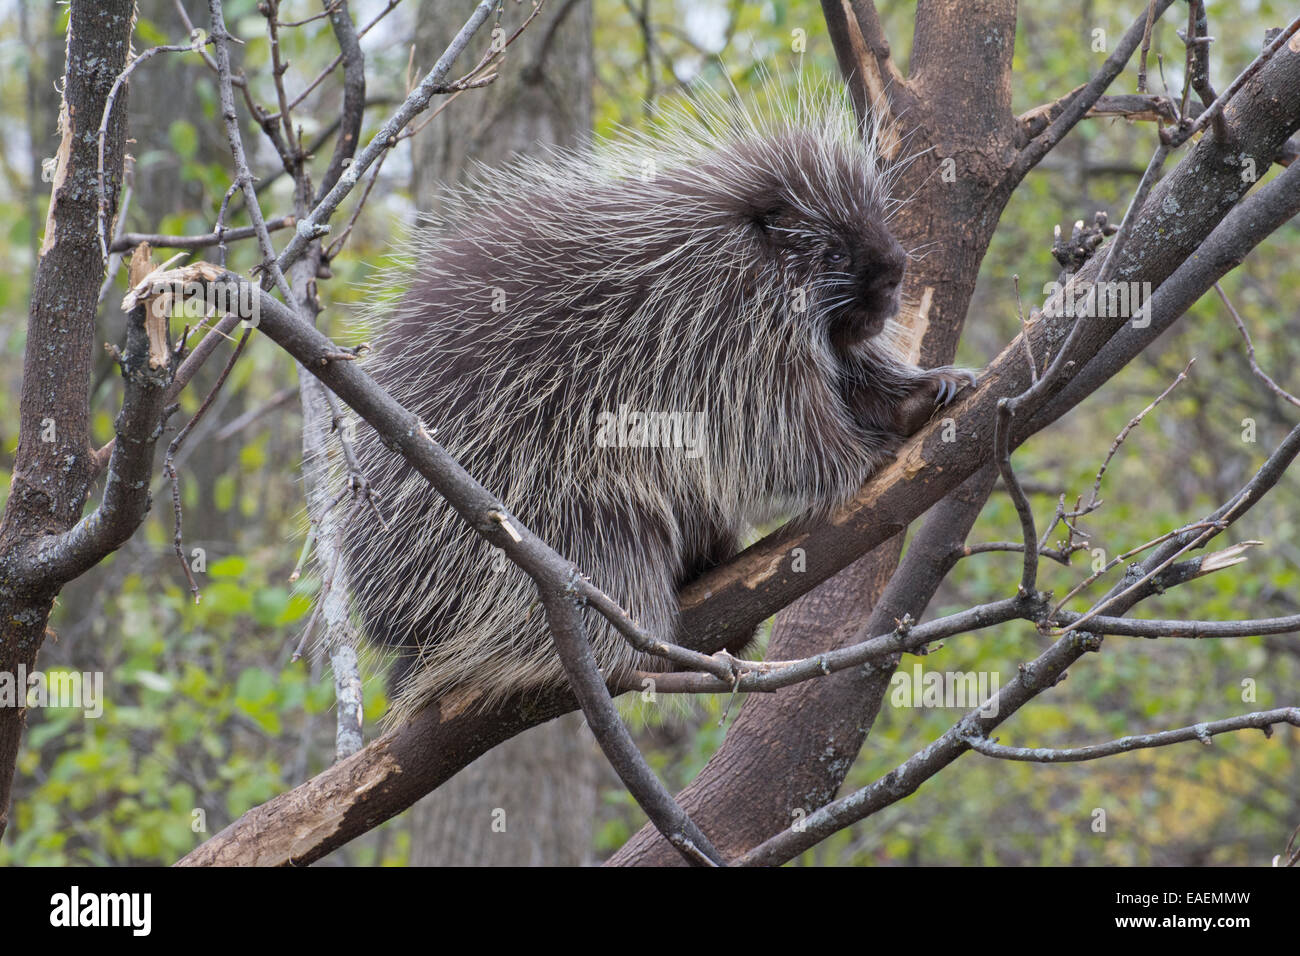 A Canadian Porcupine. Stock Photo